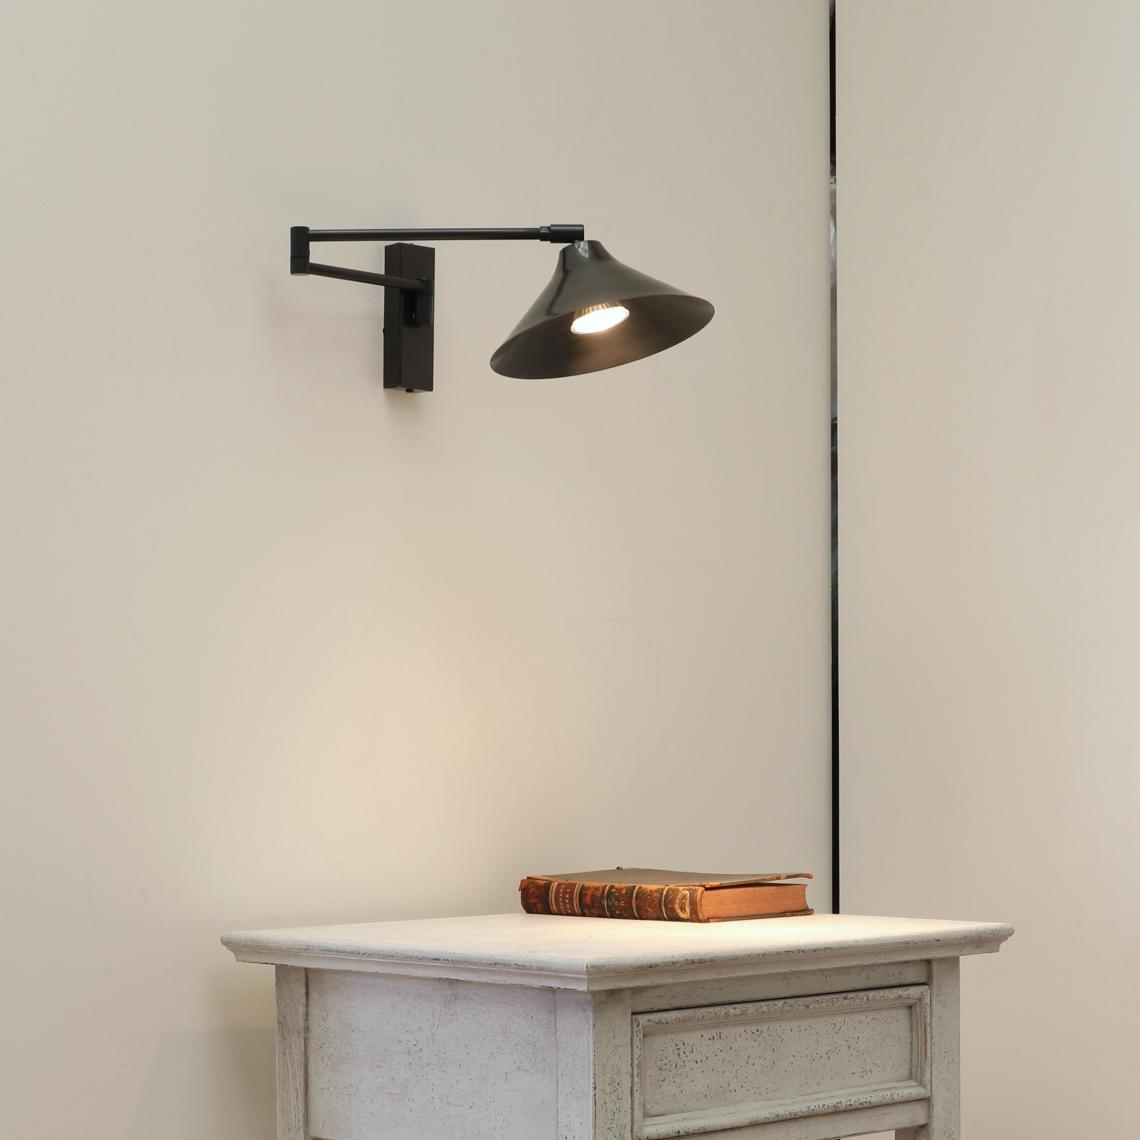 102-45 - French Wall Light // Flared Shade